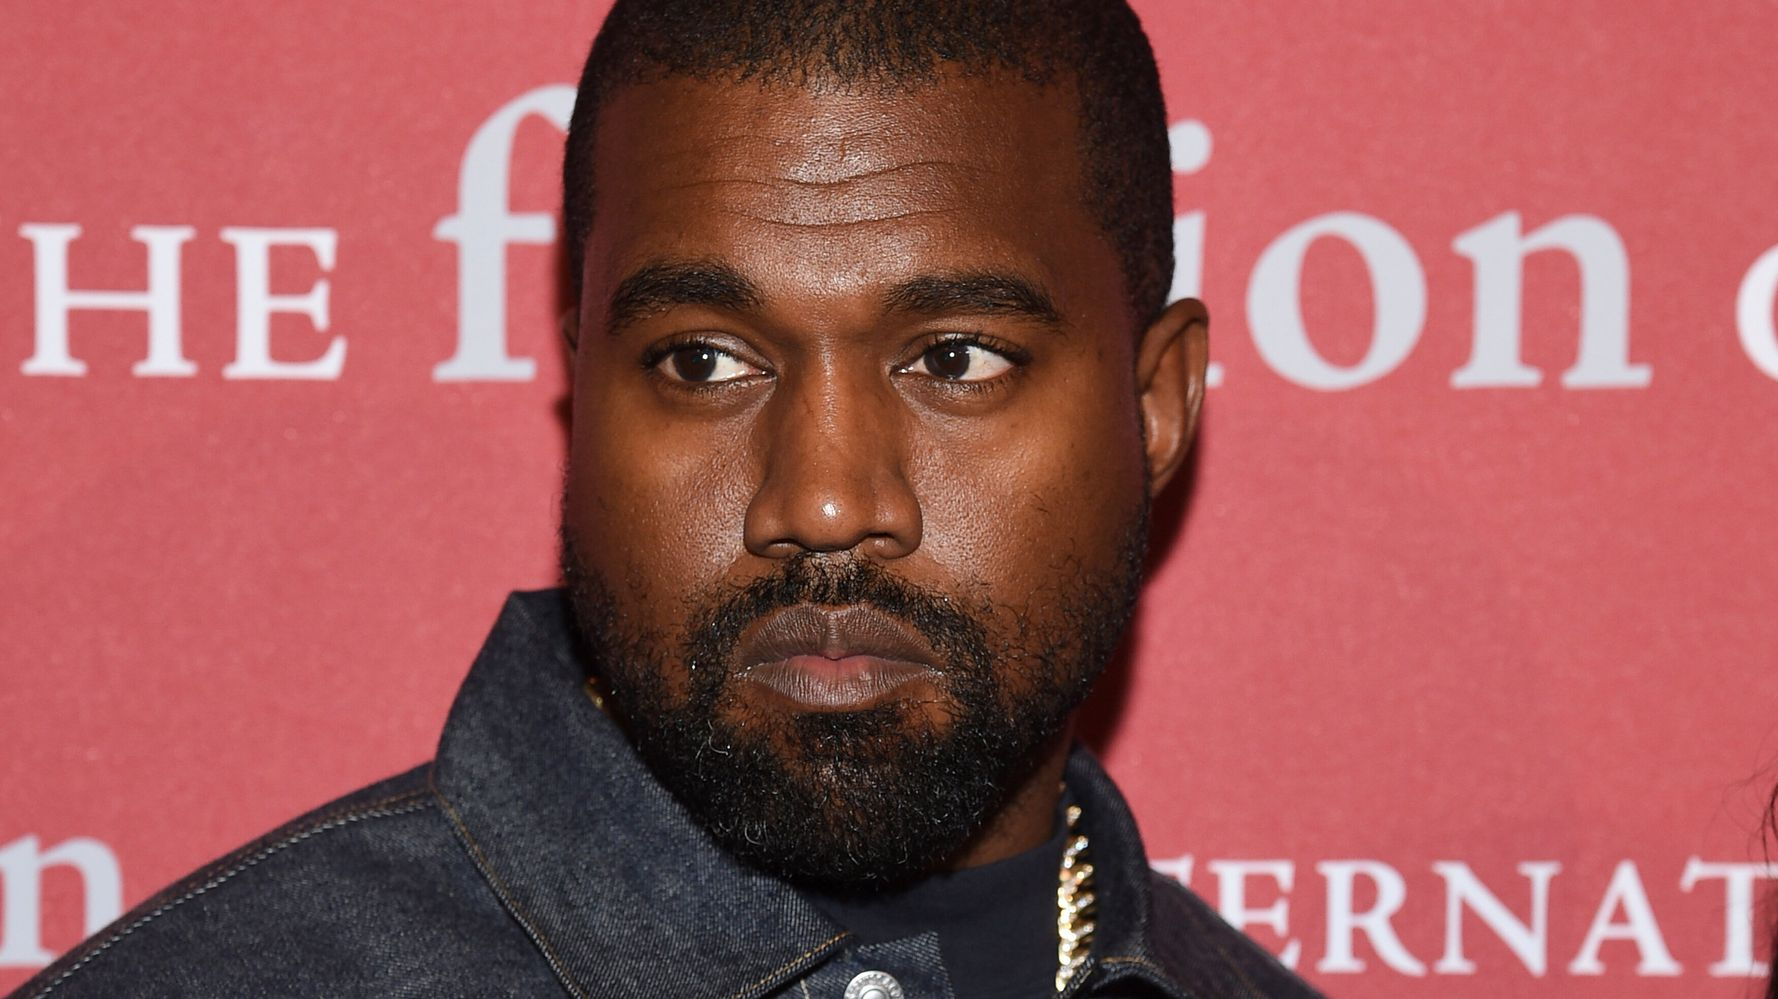 Westlake Legal Group 5dcf72902500007f08d2d447 Kanye West Performs In Texas Jail For Over 200 Inmates